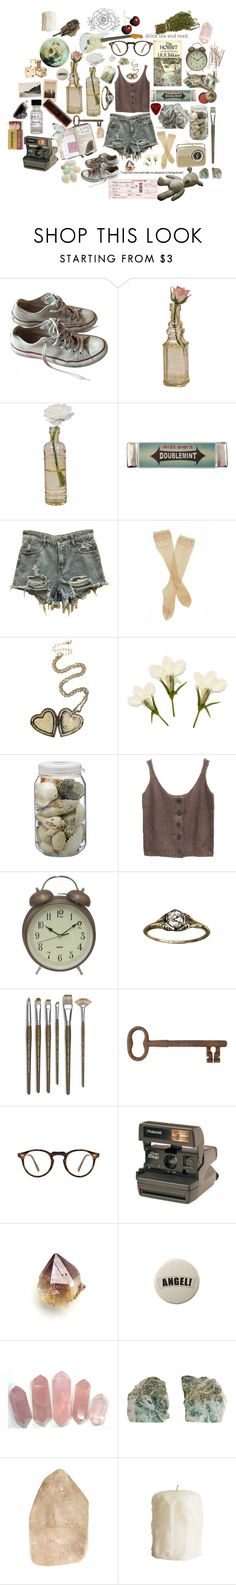 """Vintage Musician"" by causingpanicatthetheater on Polyvore featuring Converse, Cultural Intrigue, Miss Bibi, Fogal, La Ligne, Dot & Bo, Bourjois, Monza, Jayson Home and Oliver Peoples"